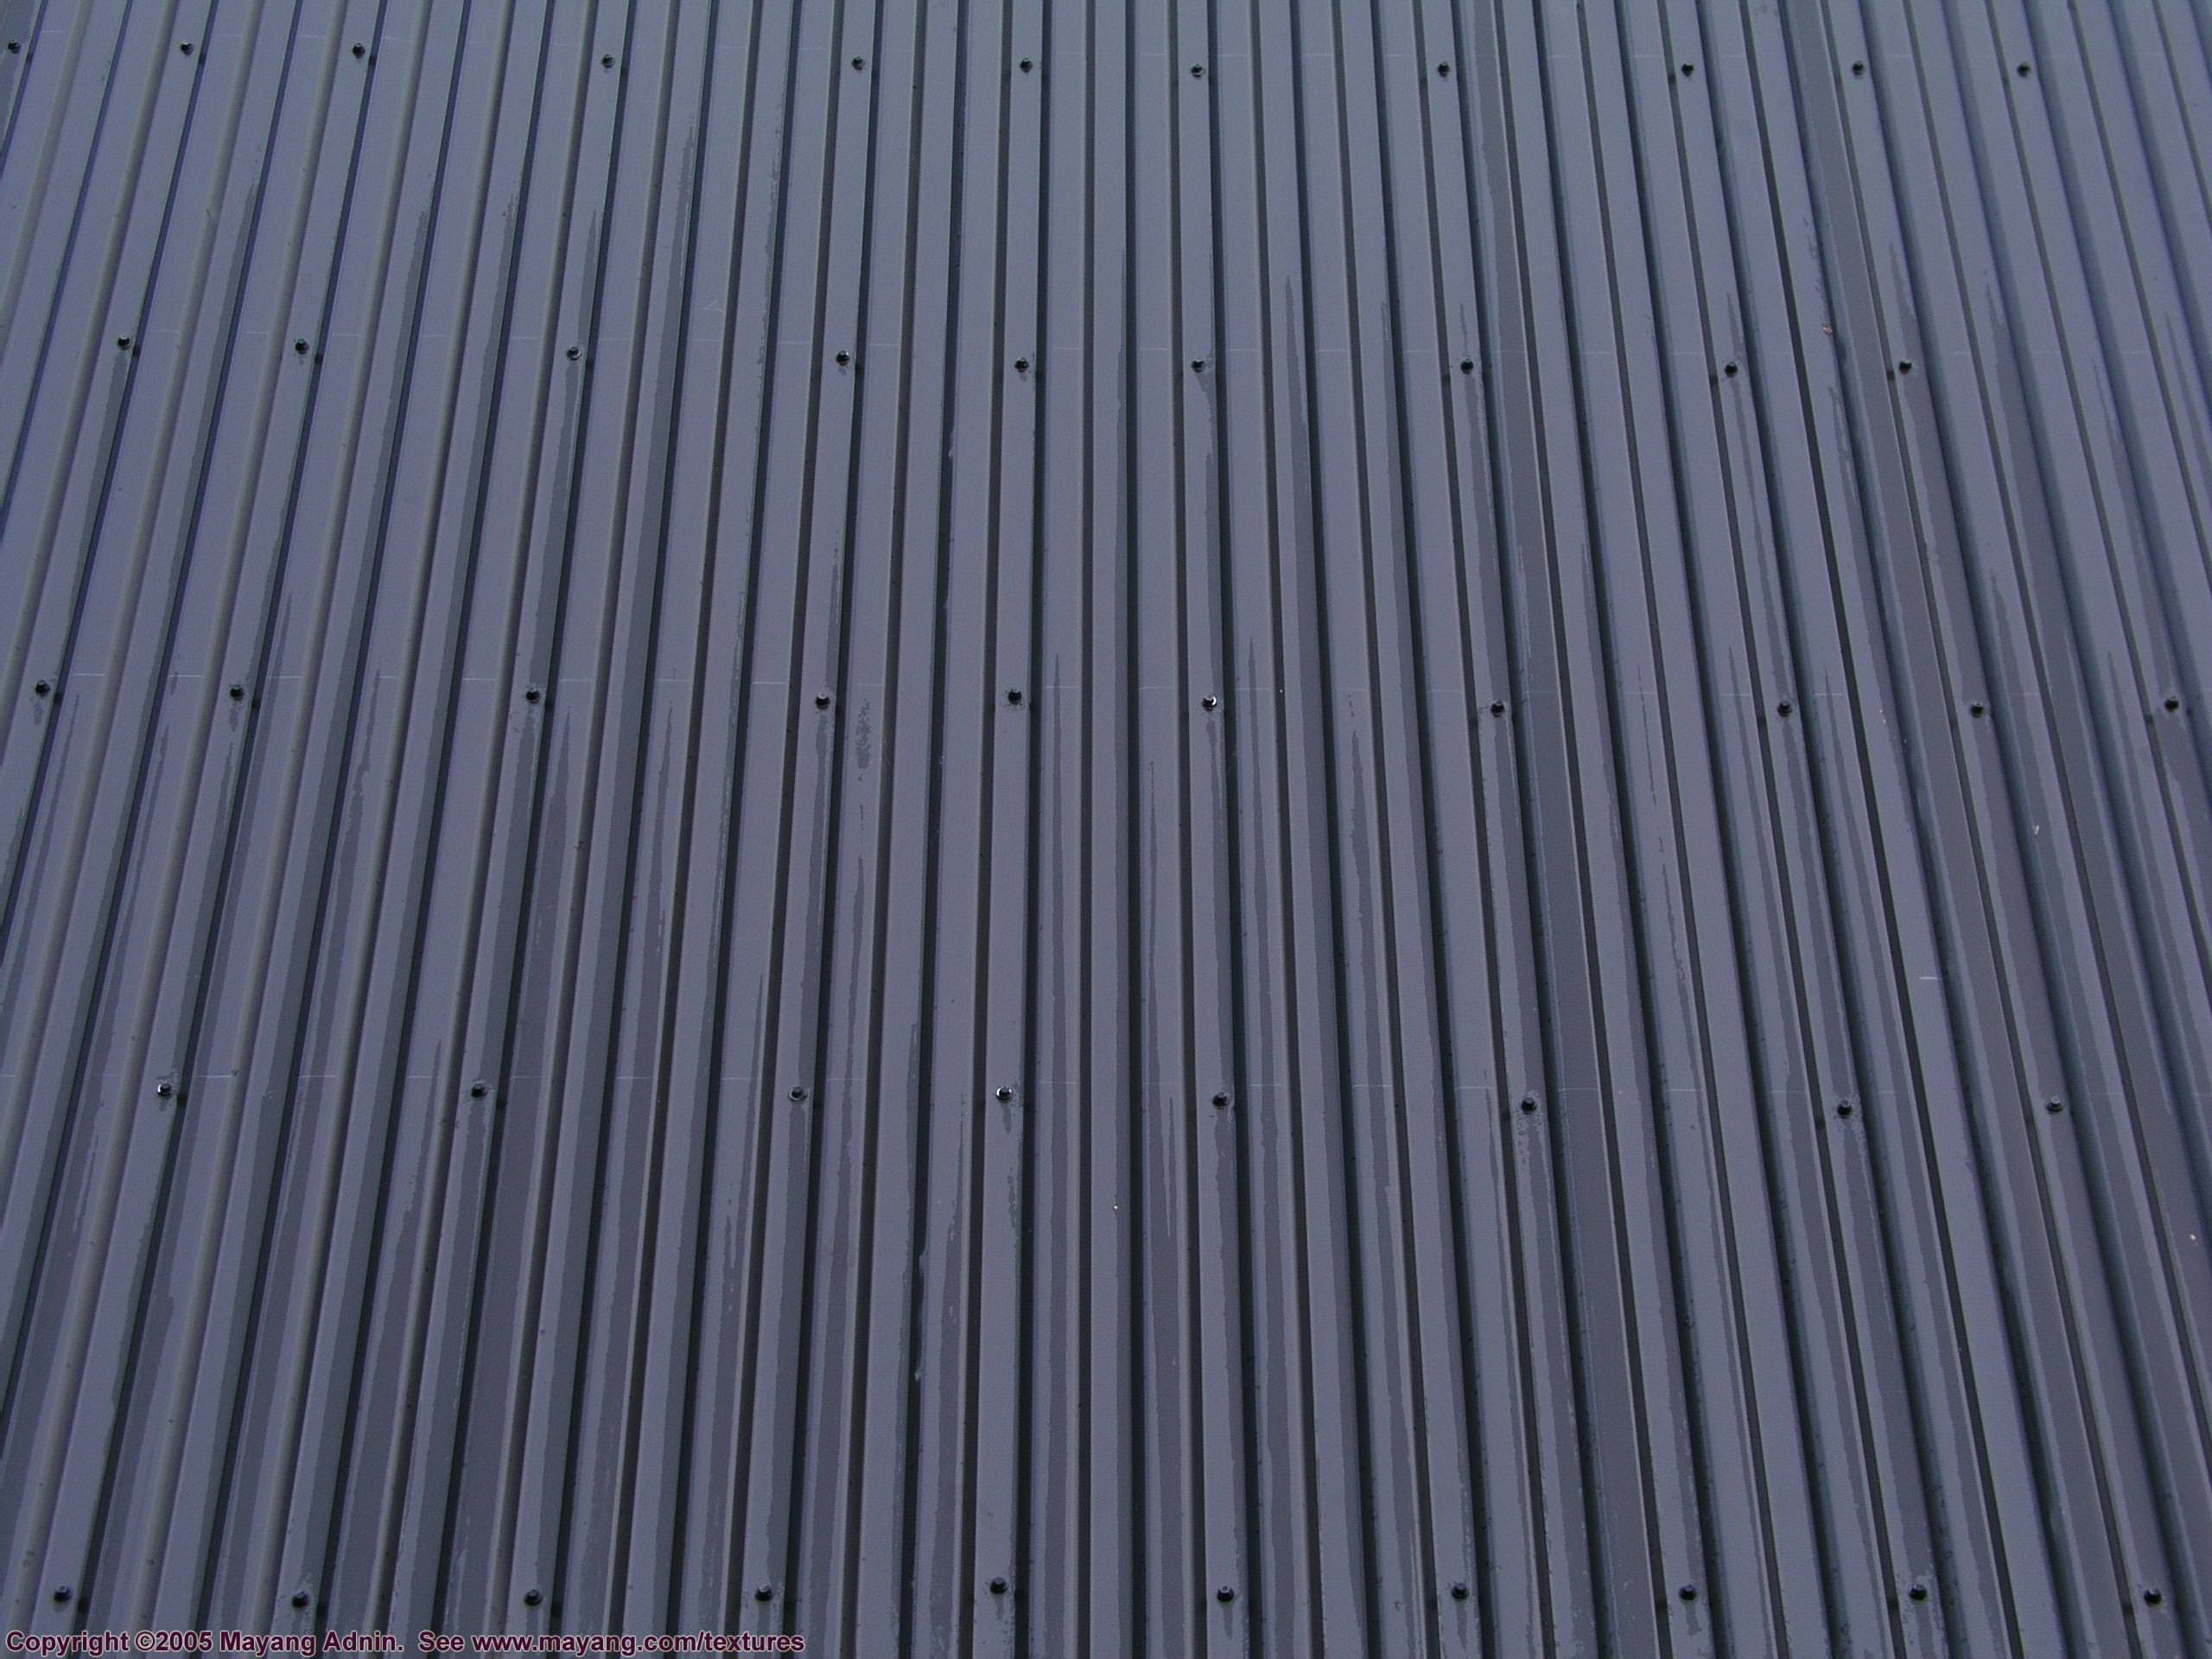 Image of: Corrugated Metal Siding Corner Detail